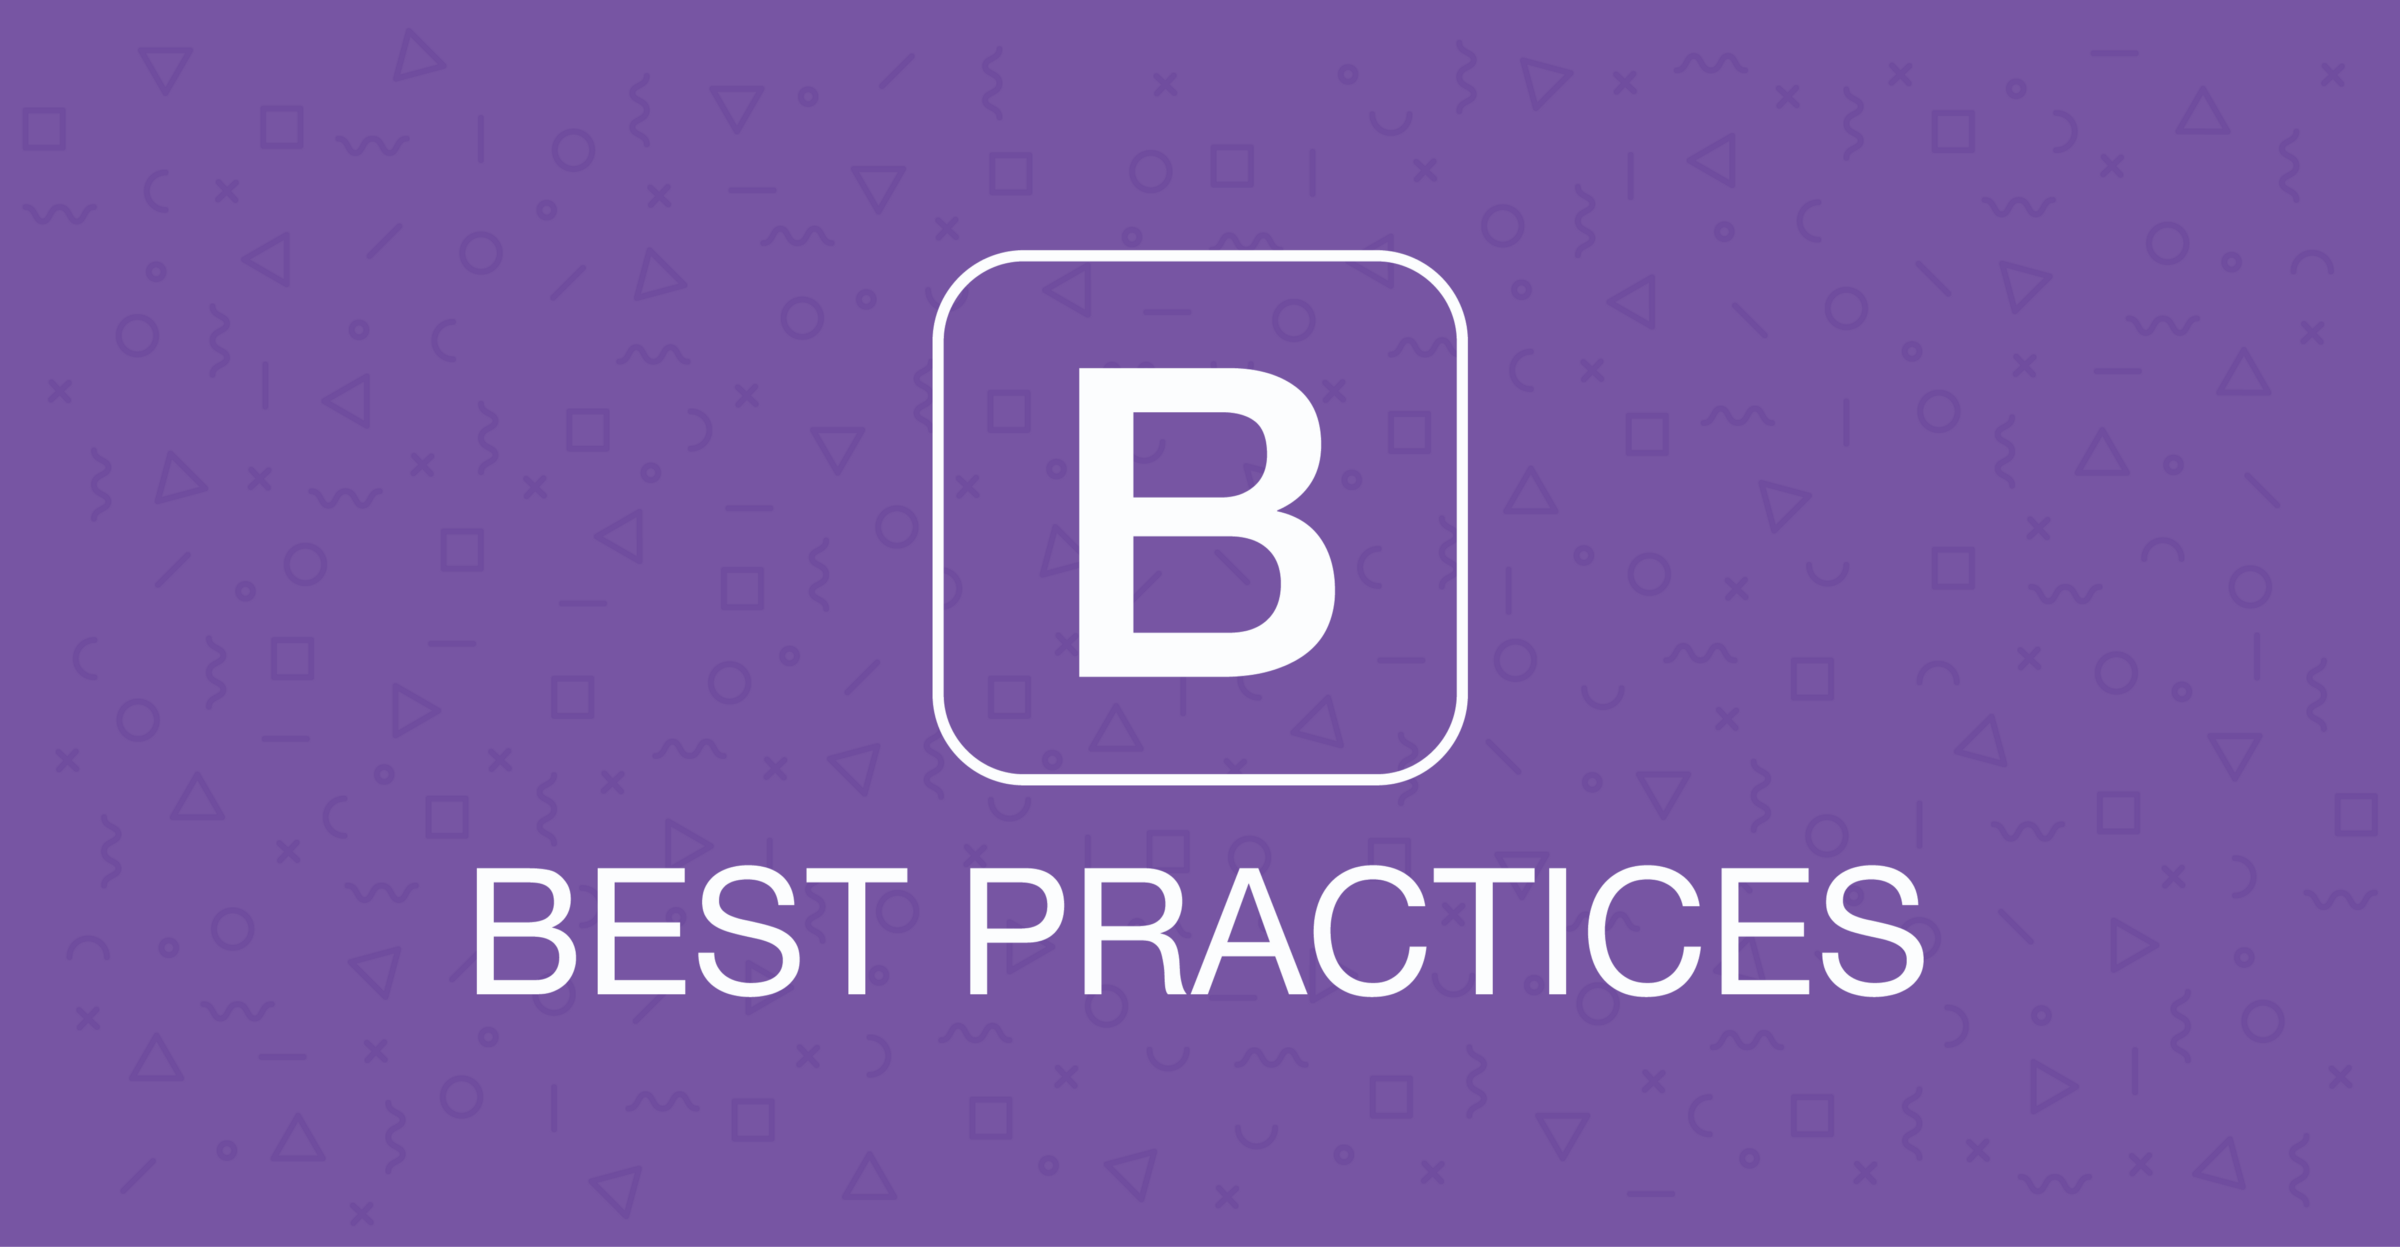 Bootstrap Framework - Best Practices - By